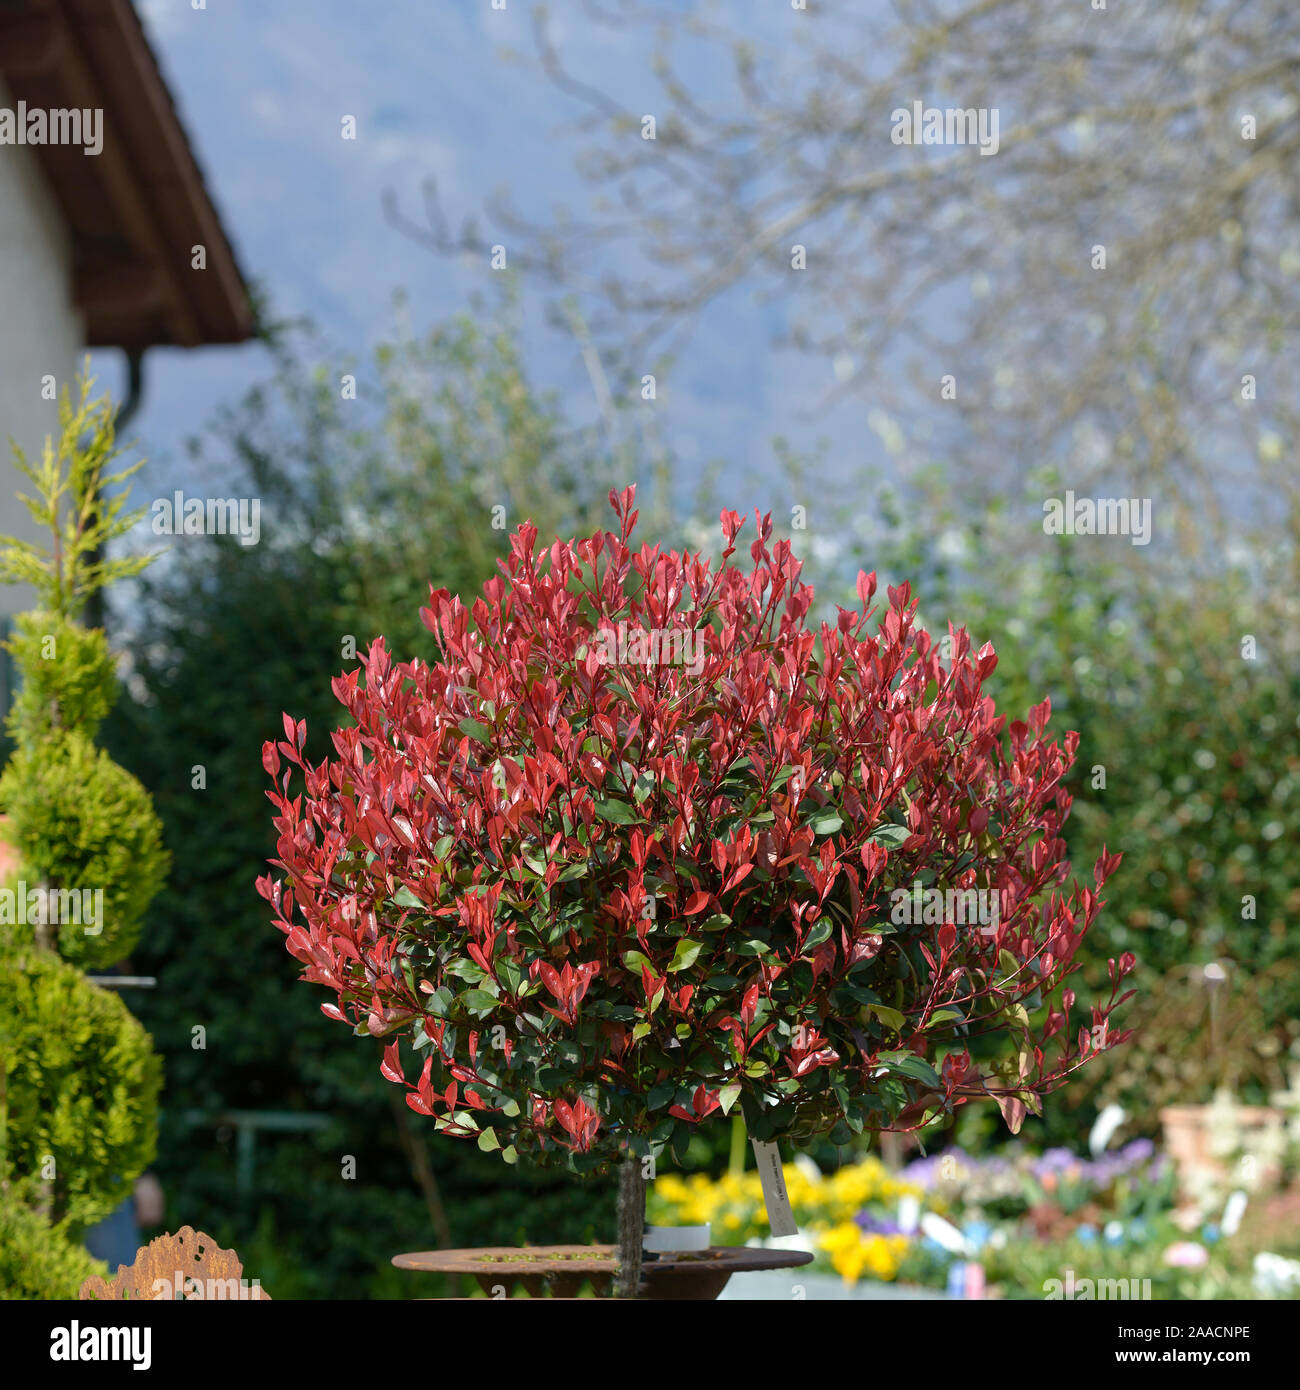 Glanzmispel (Photinia × fraseri 'Little Red Robin') Stock Photo